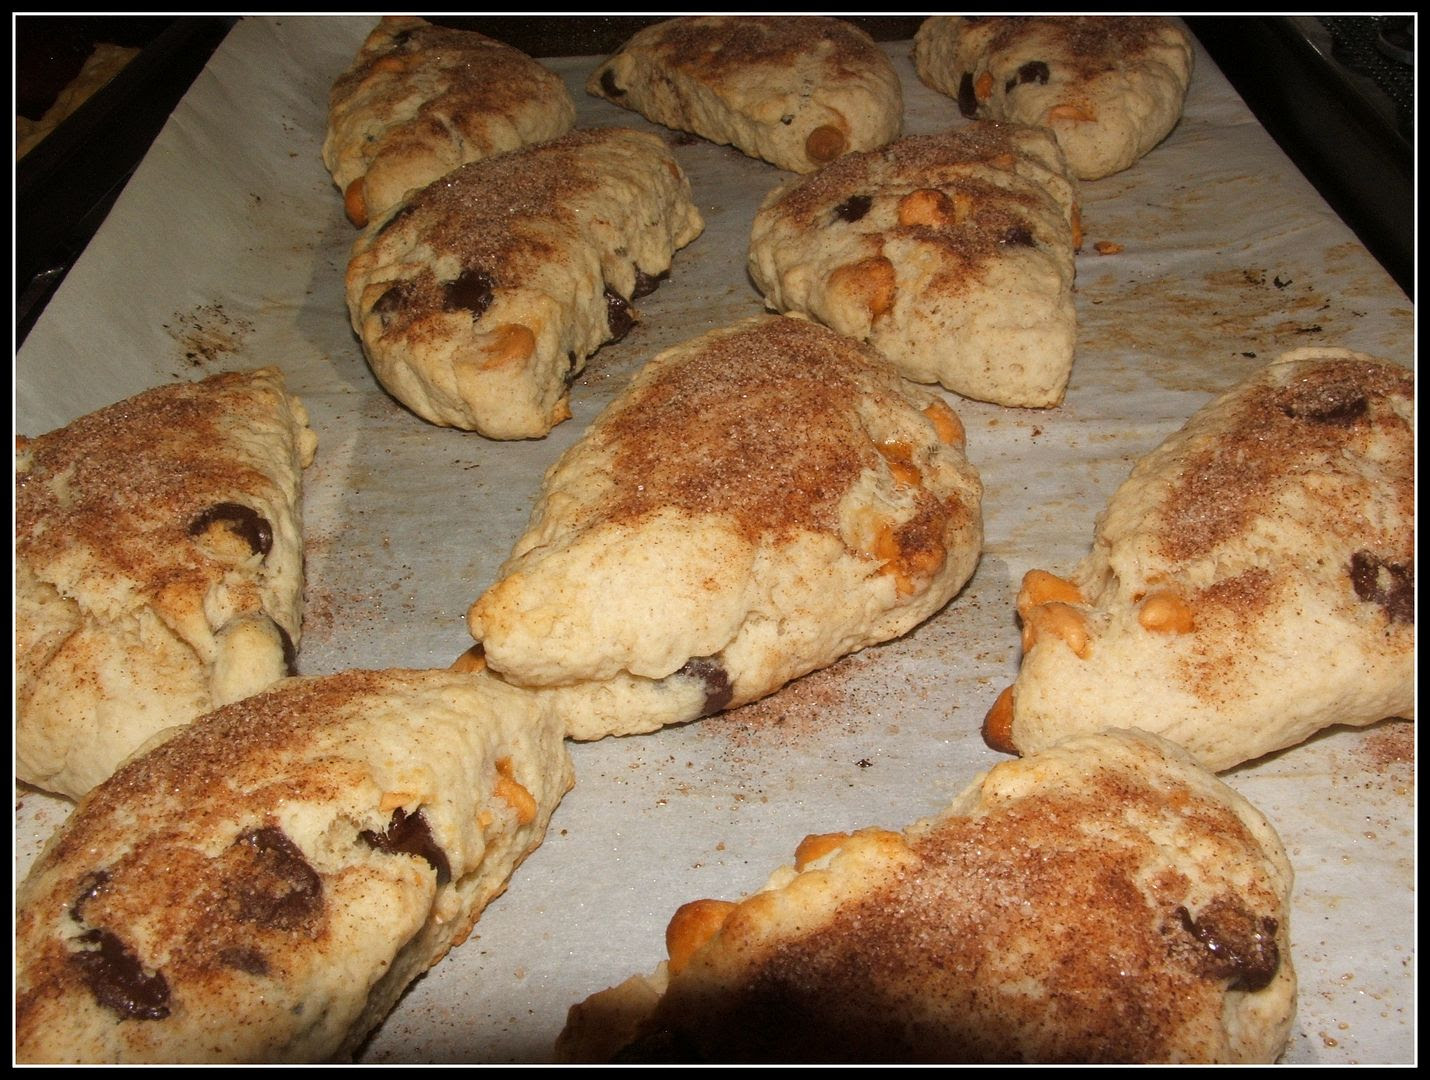 Chocolate & Butterscotch Chip Scones by Angie Ouellette-Tower for godsgrowinggarden.com photo 009_zps386f5d58.jpg